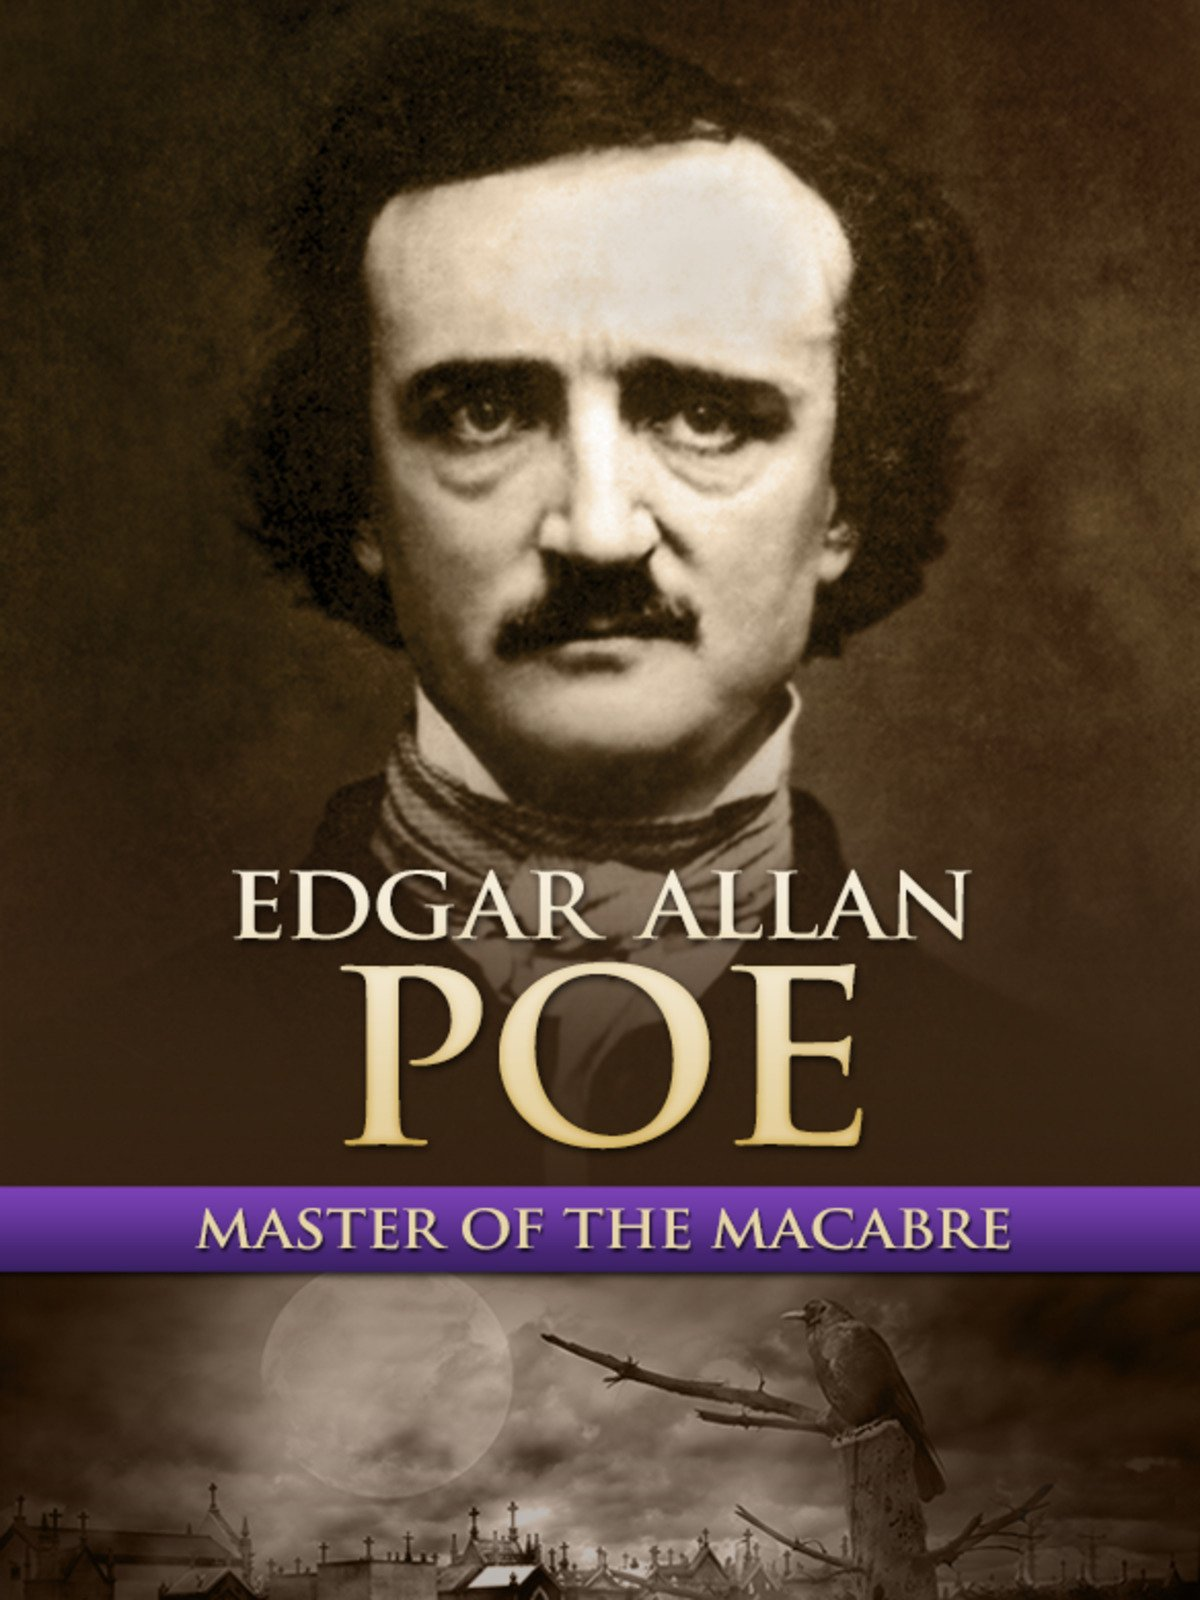 Edgar Allan Poe: Master of the Macabre